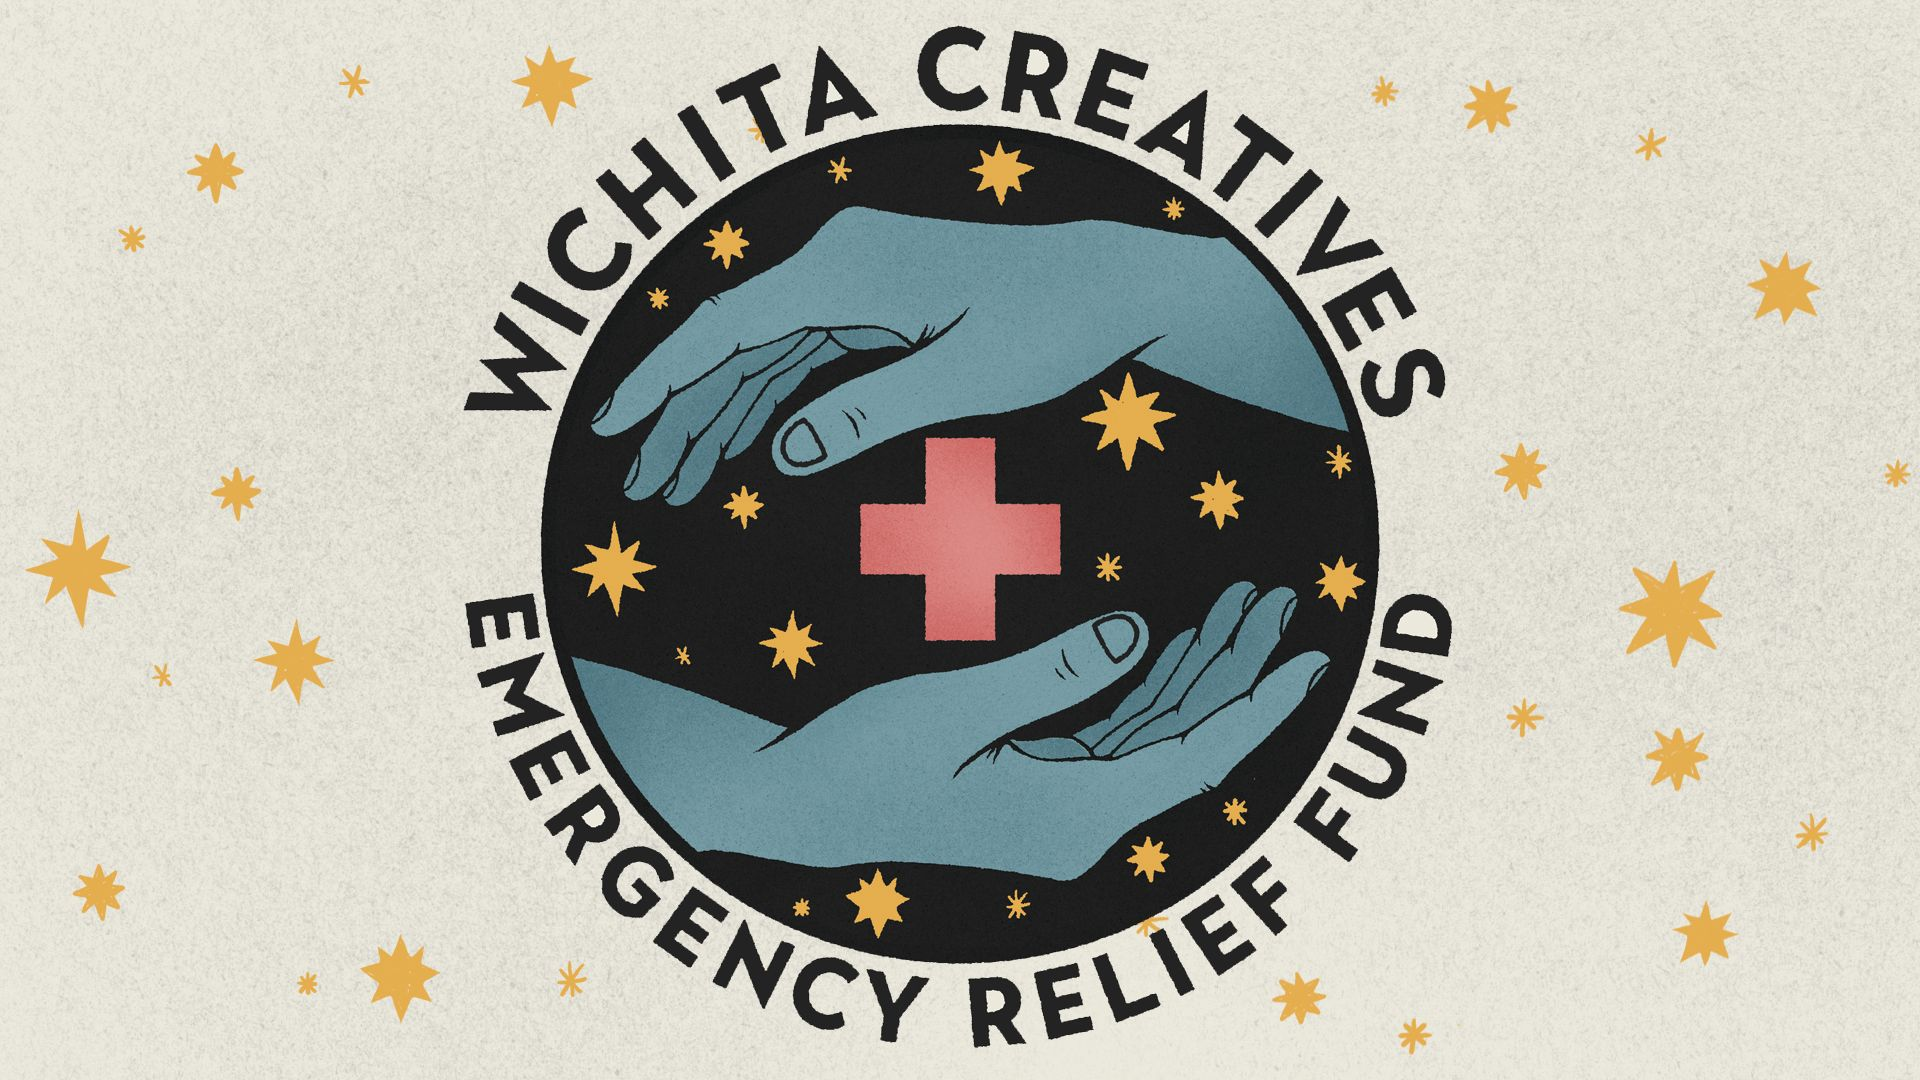 wichitacreativesfundbanner